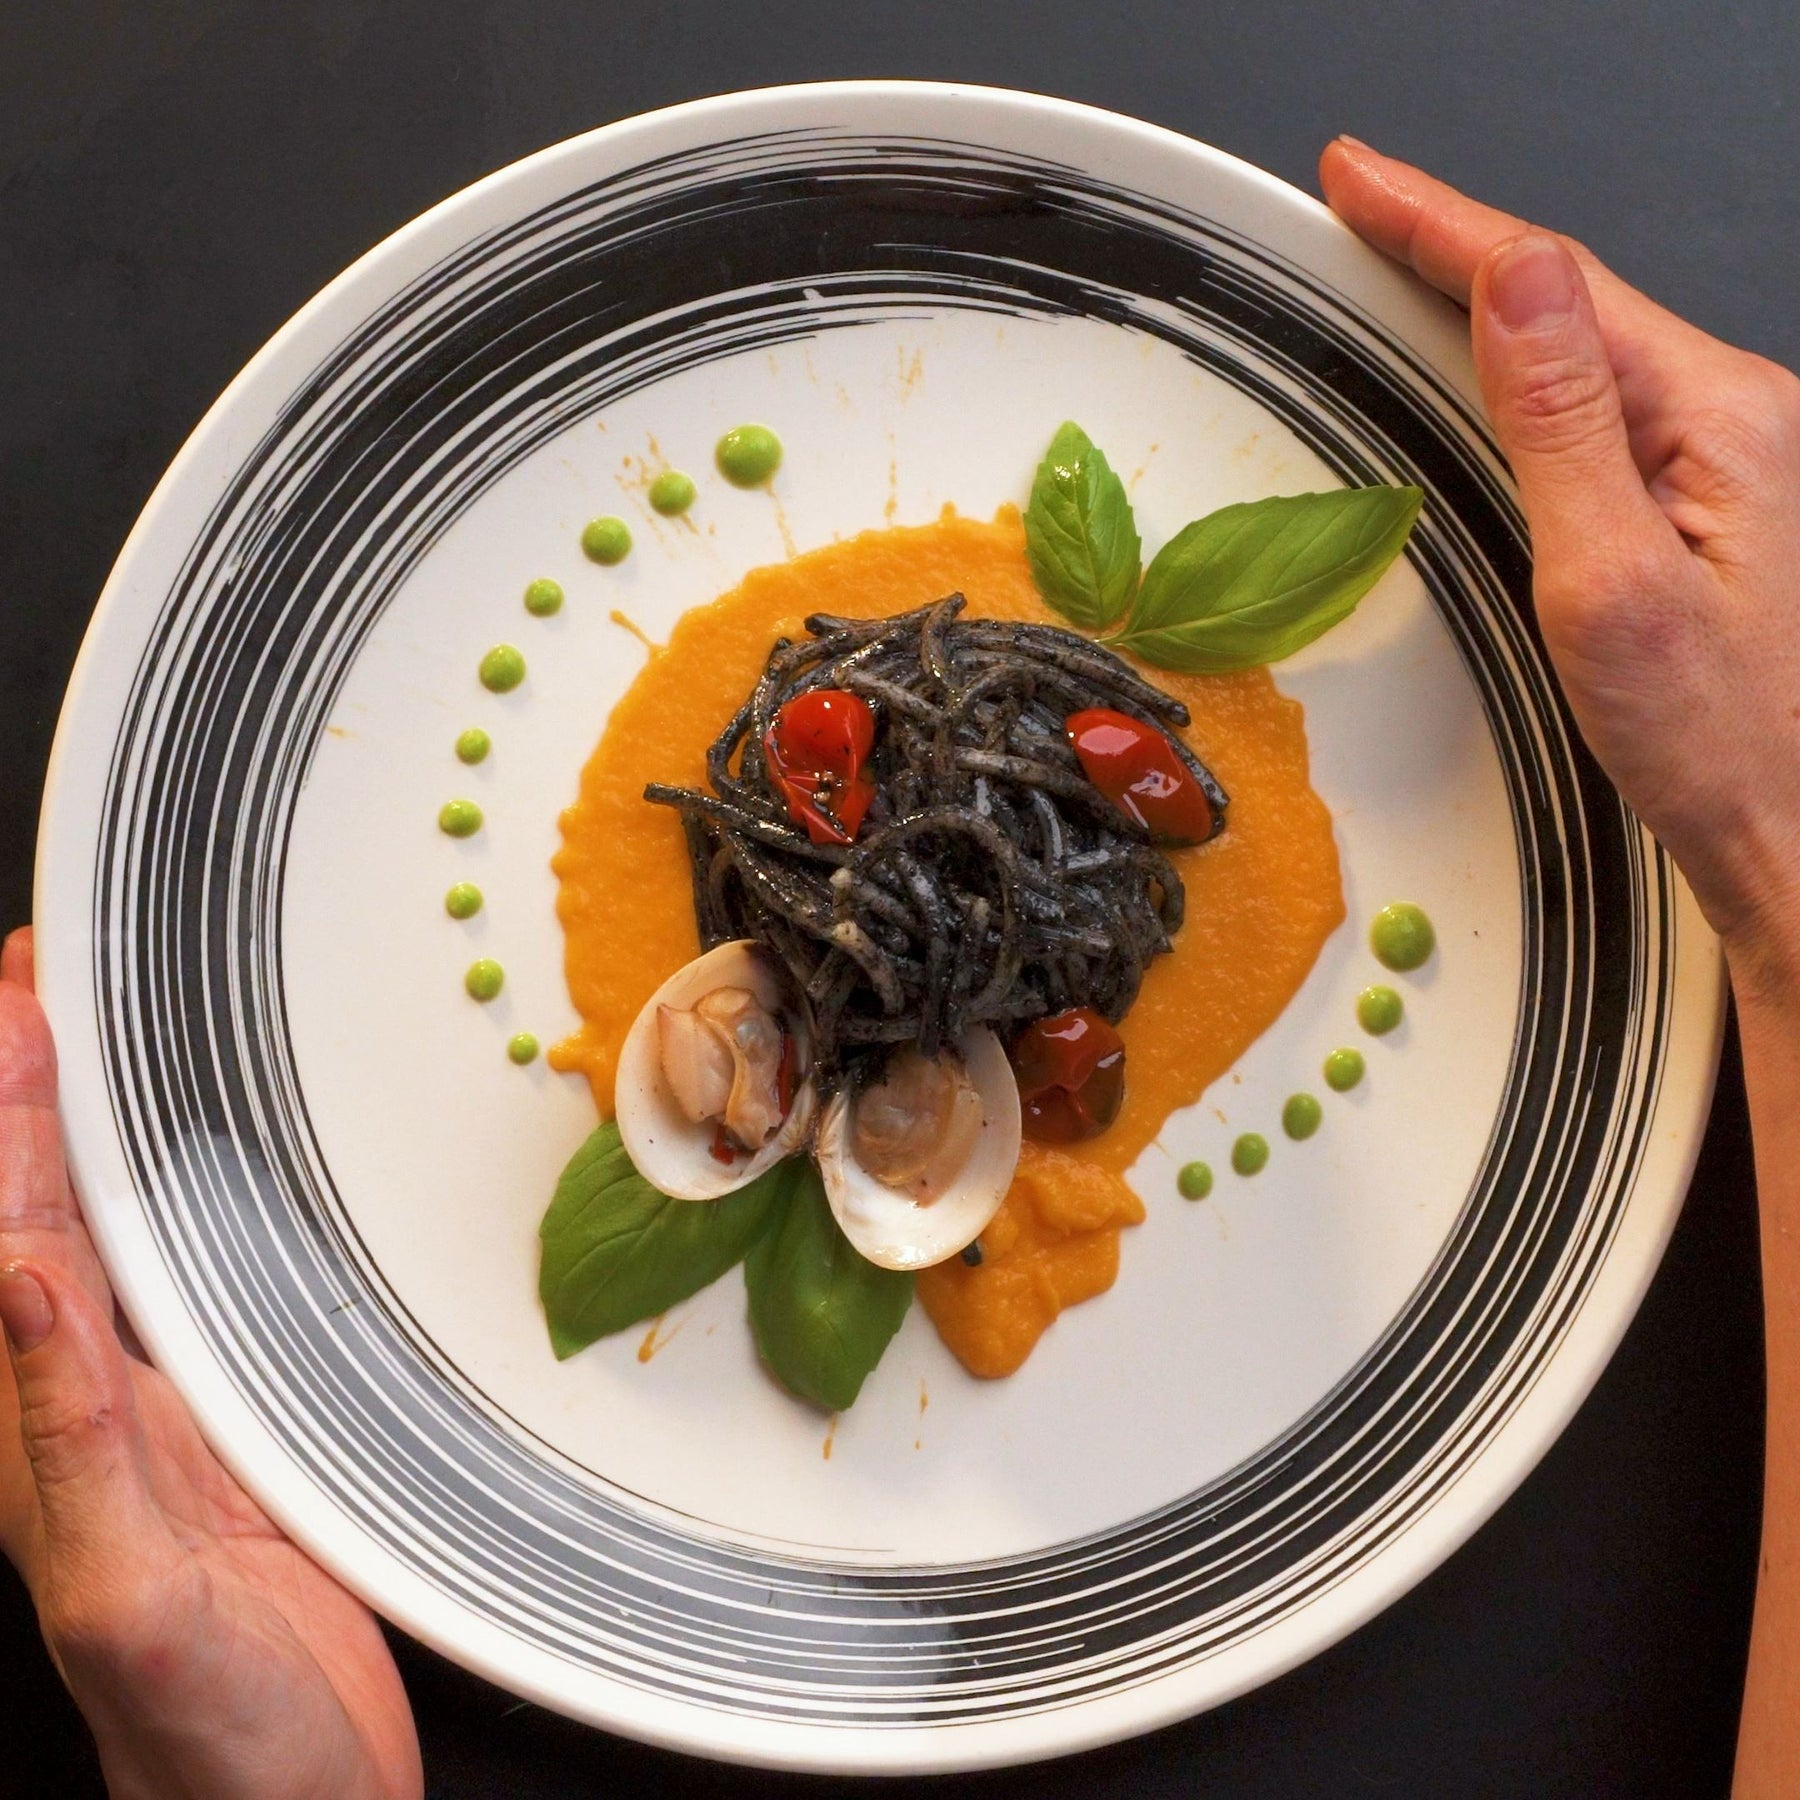 🦑 Squid Ink Spaghetti with Clams & Cherry Tomatoes 🦑